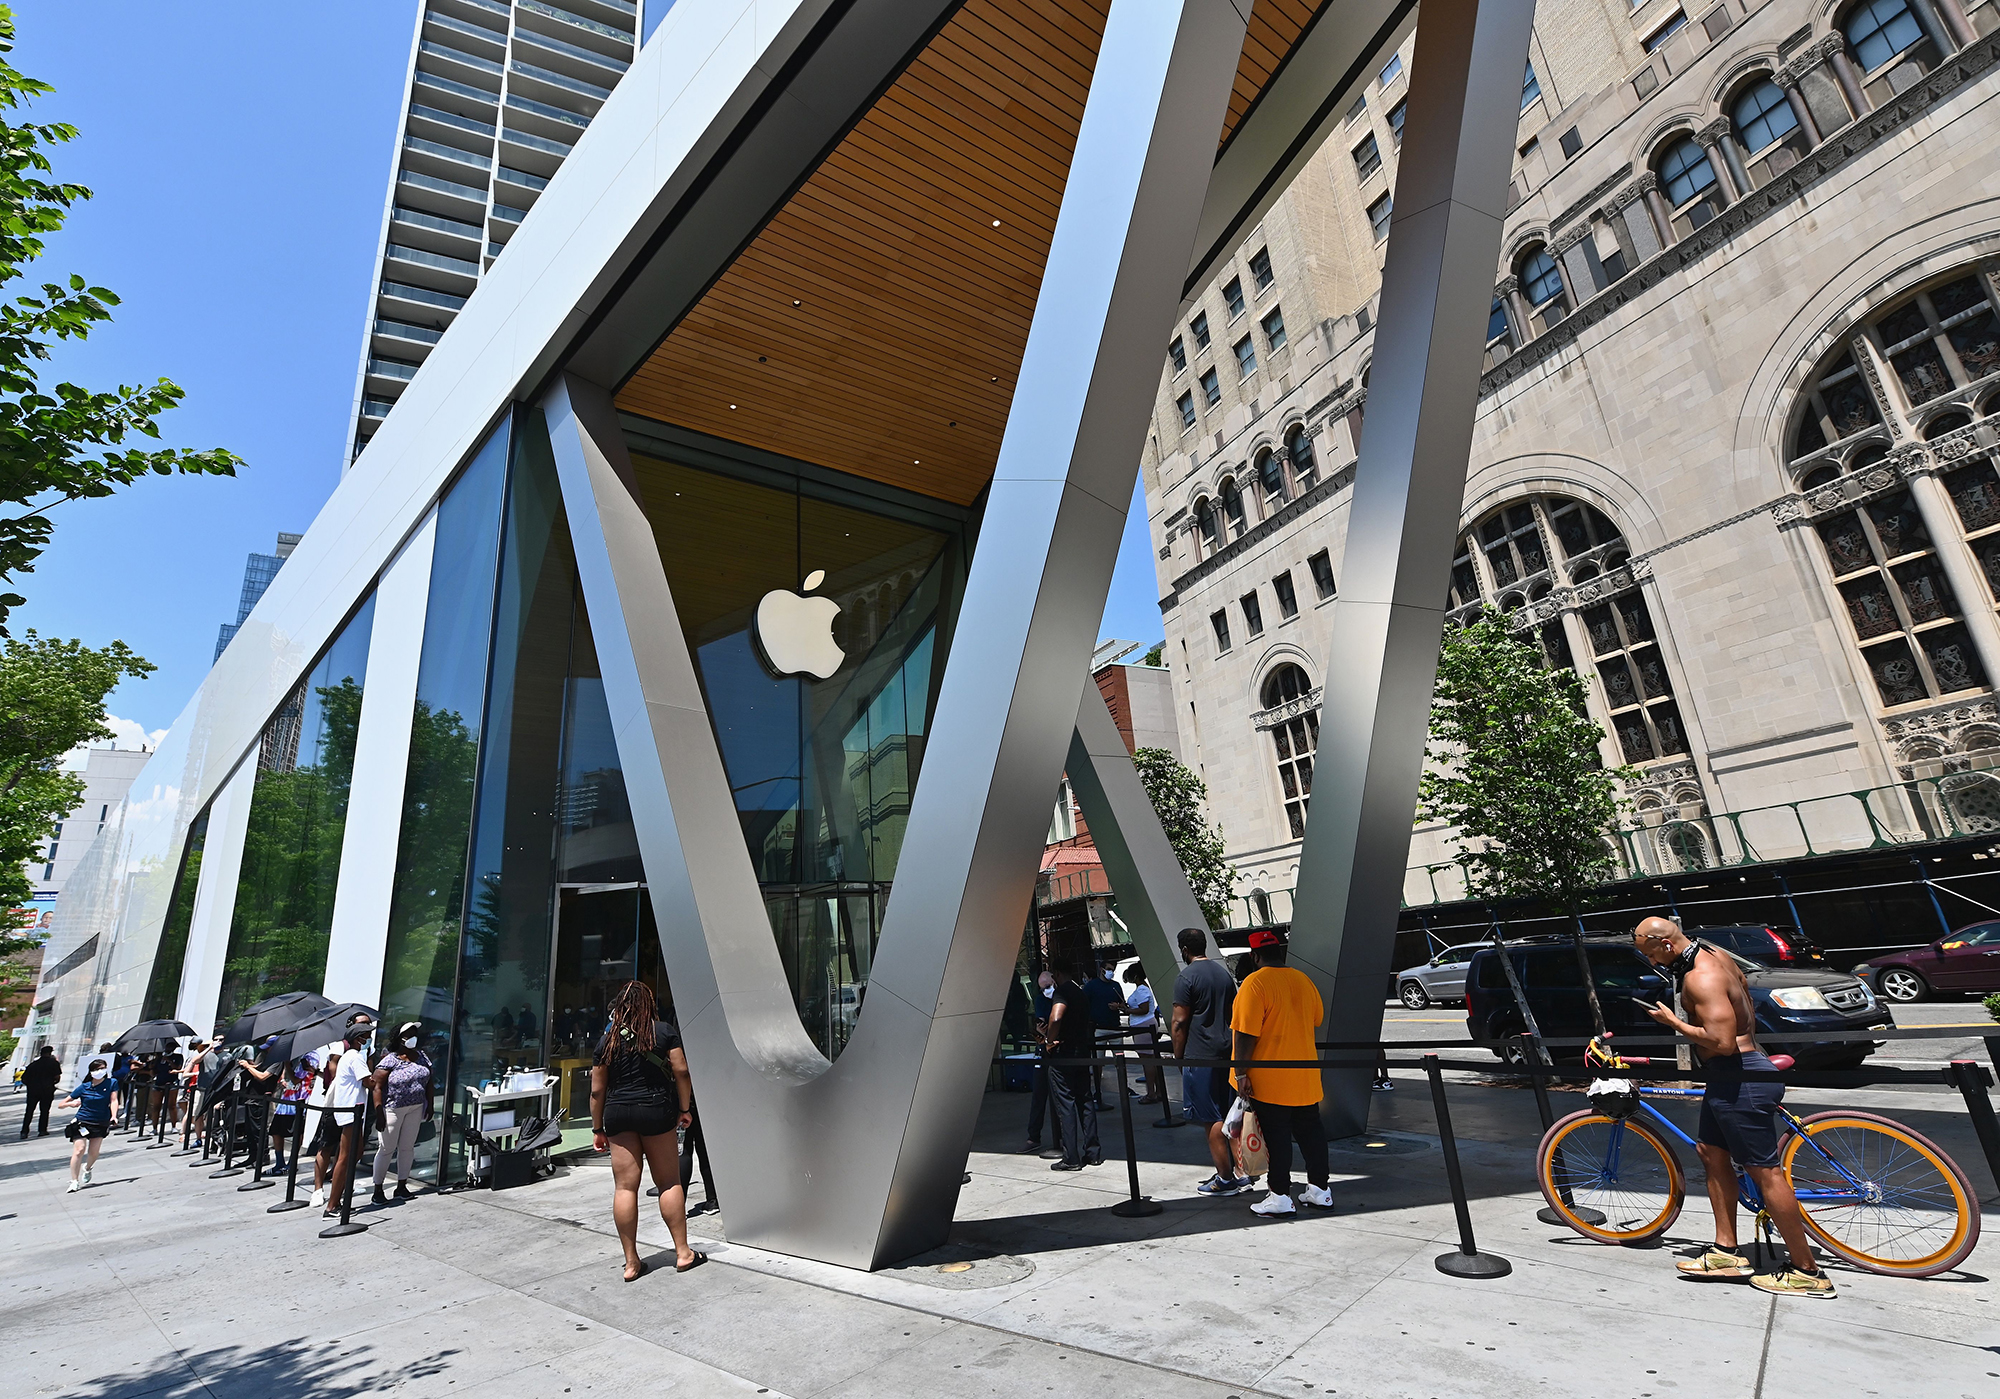 People wait in line outside an Apple store on June 22, 2020 in New York City. (ANGELA WEISS/AFP via Getty Images)